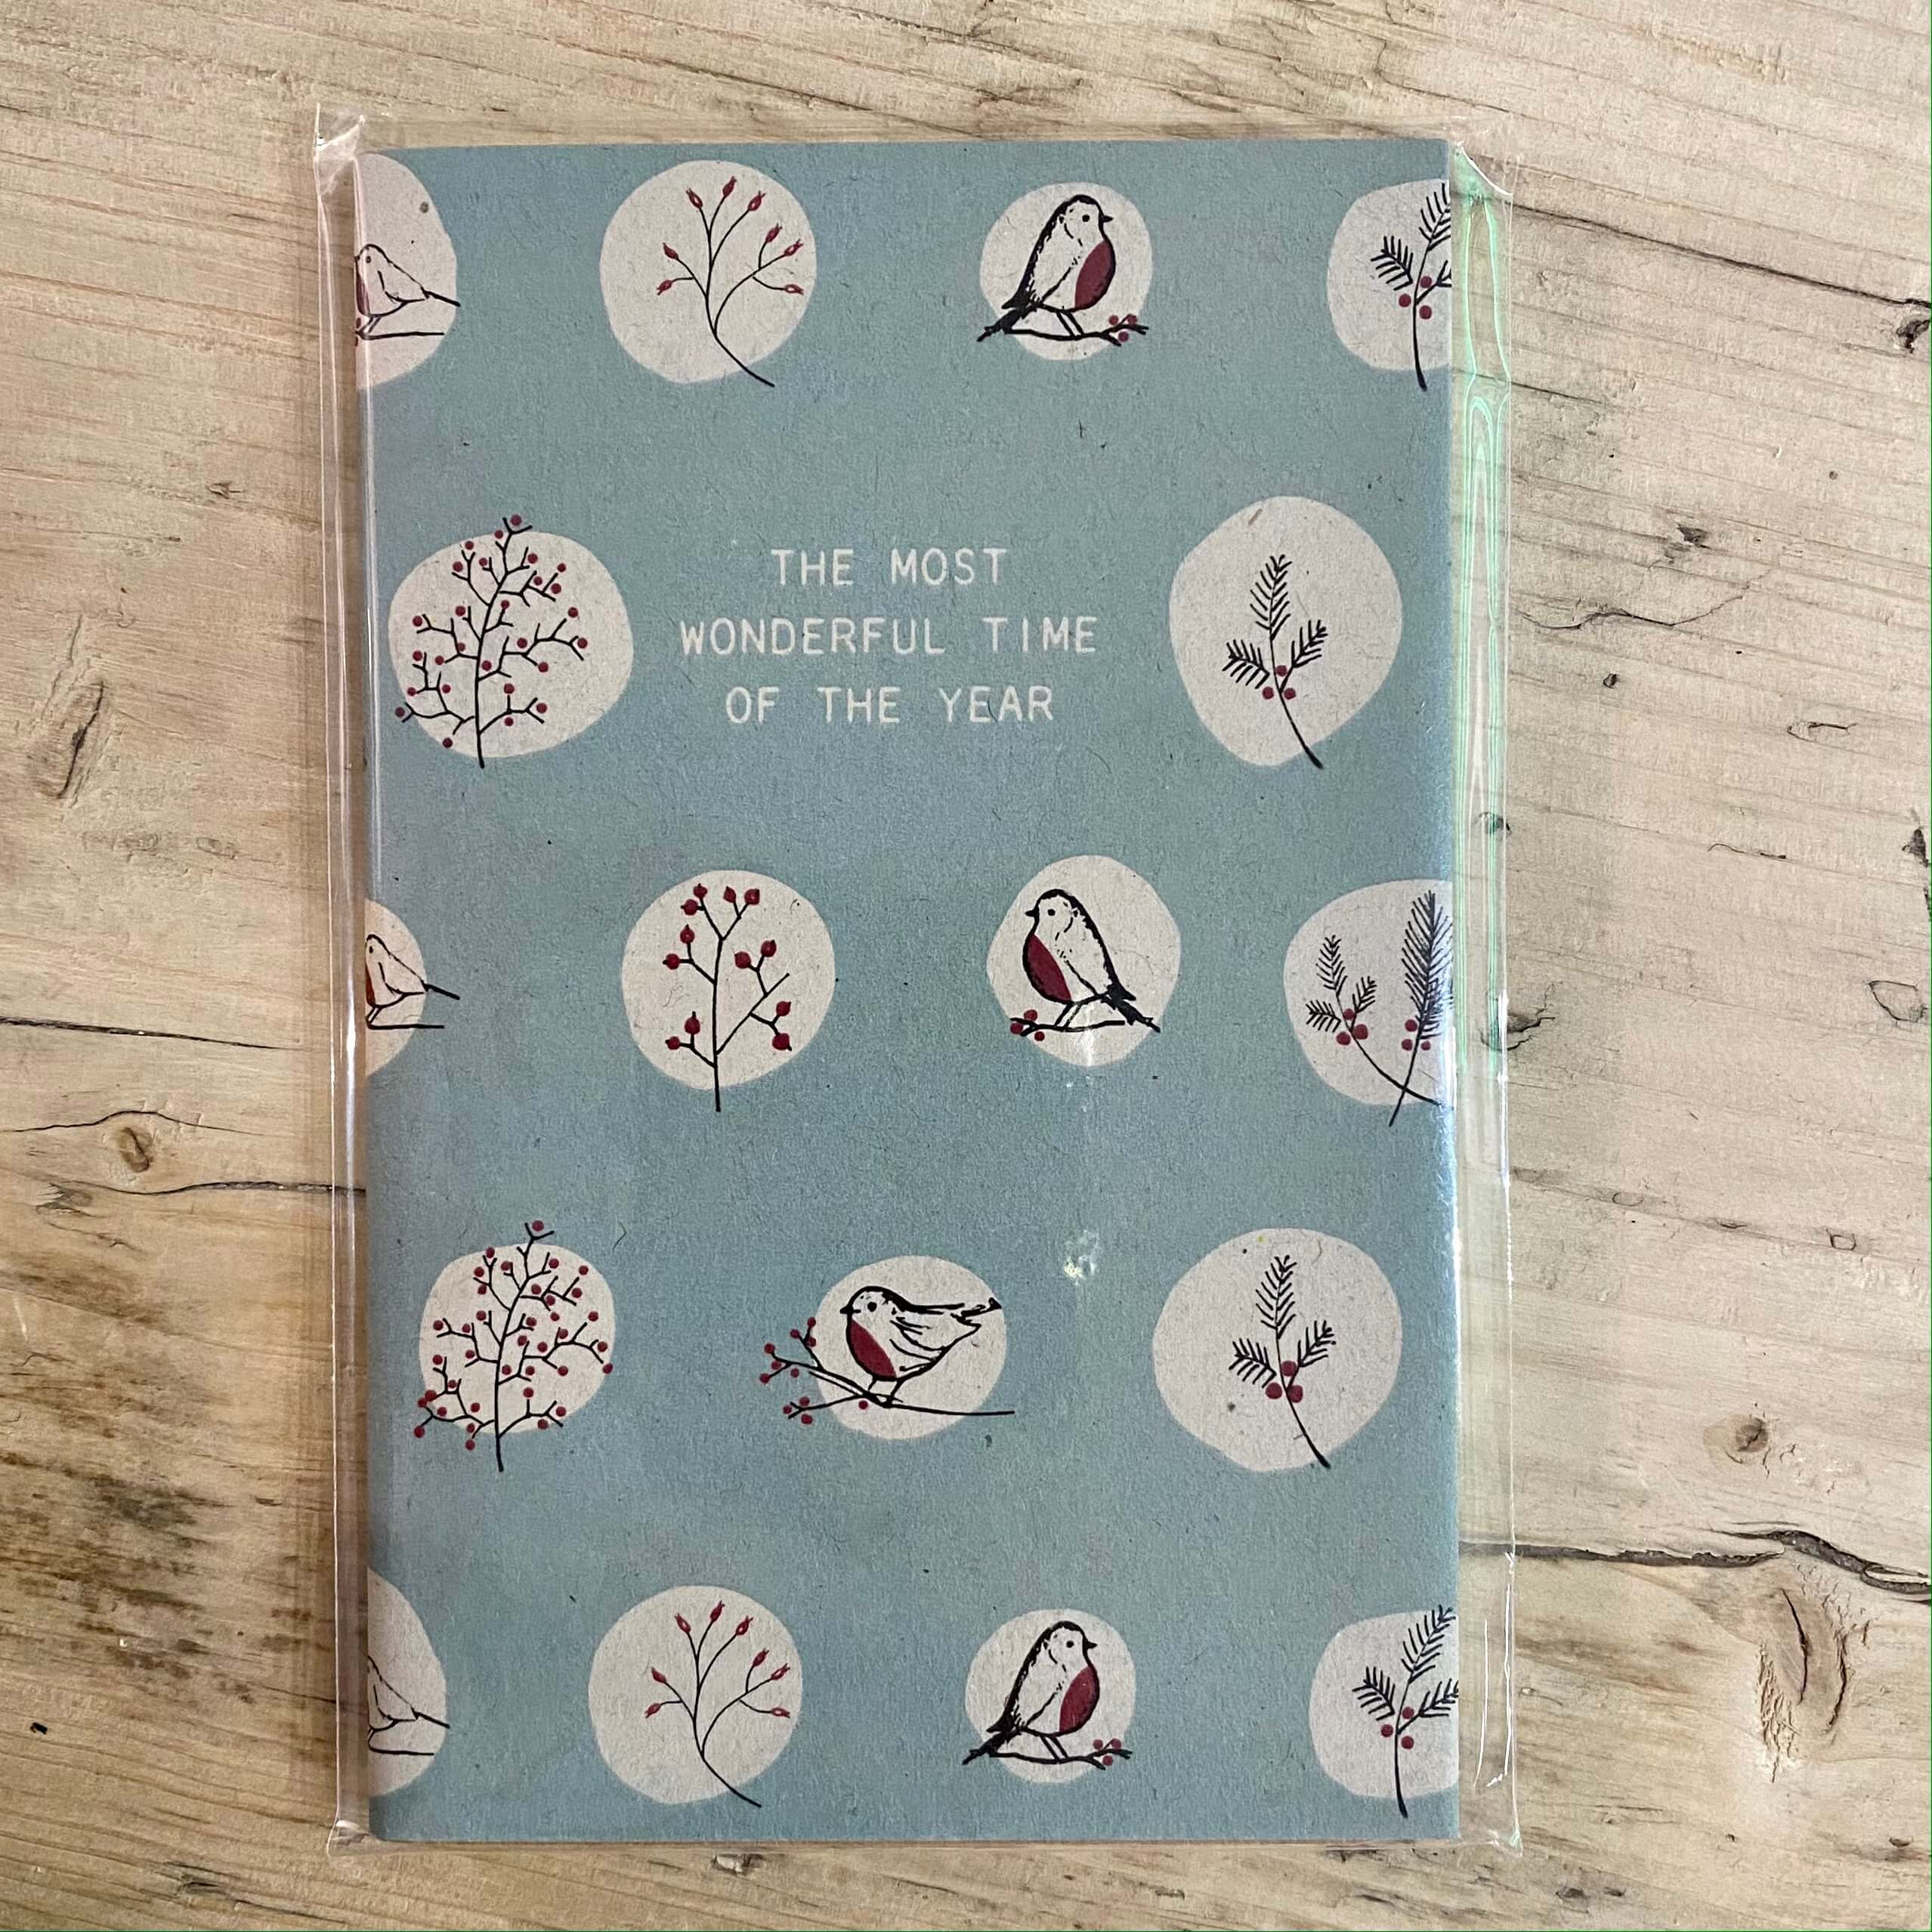 Wonderful Time of the Year Notebook